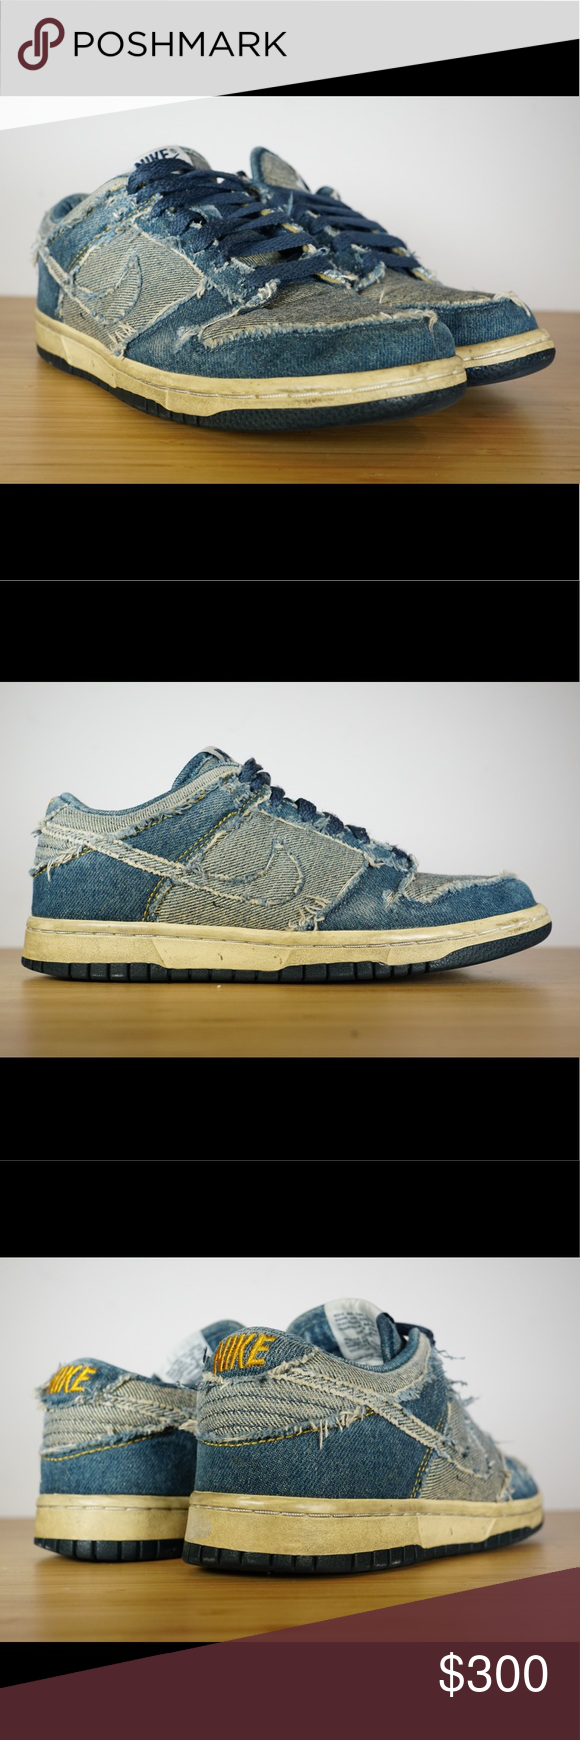 buy popular c1a2c 67446 Nike DS 2006 Dunk Low CL DENIM Size 5 304714-441 Nike DS 2006 Dunk Low CL  DENIM Size 5 Vintage 304714-441 Supreme Medicom Clot Forbes Pre-Owned with  no Box ...